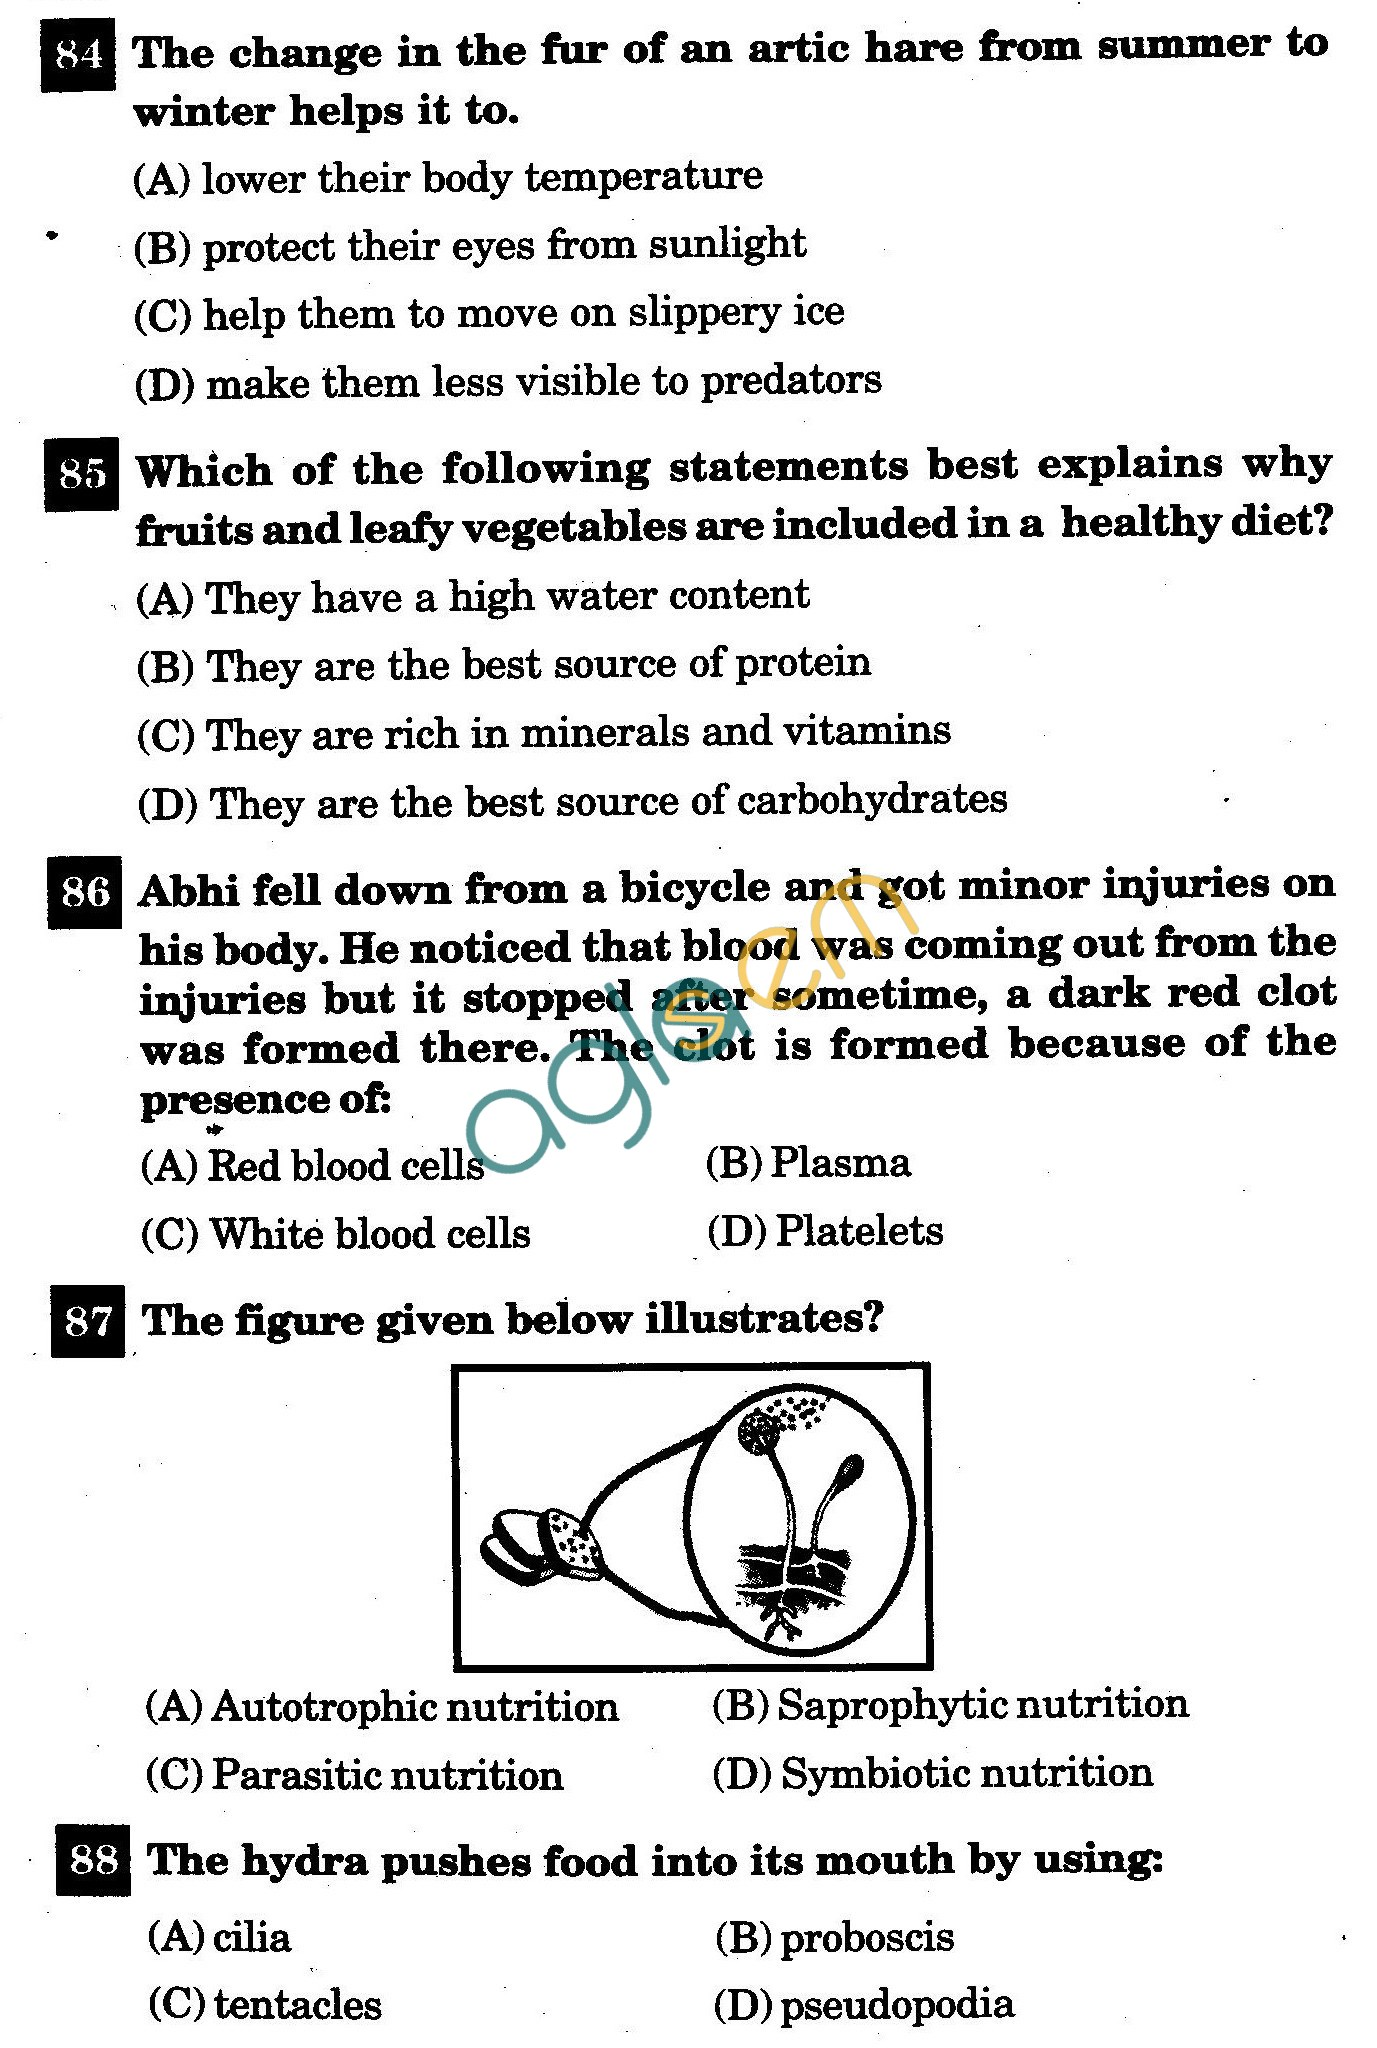 NSTSE 2011 Class VII Question Paper with Answers - Biology